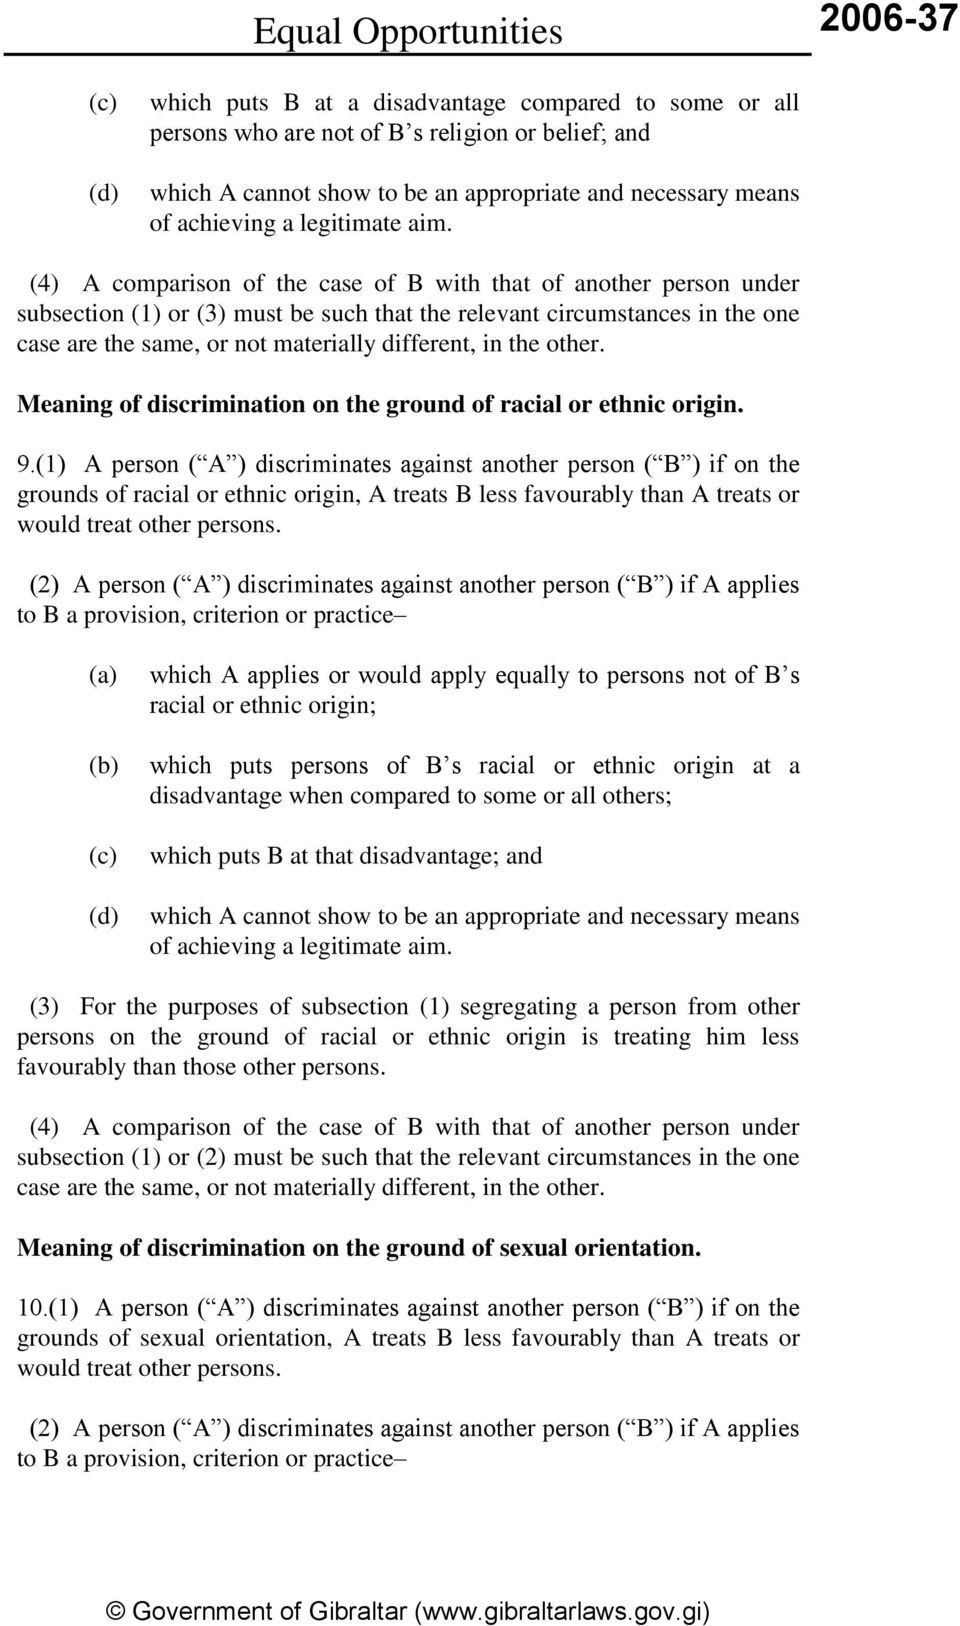 (4) A comparison of the case of B with that of another person under subsection (1) or (3) must be such that the relevant circumstances in the one case are the same, or not materially different, in